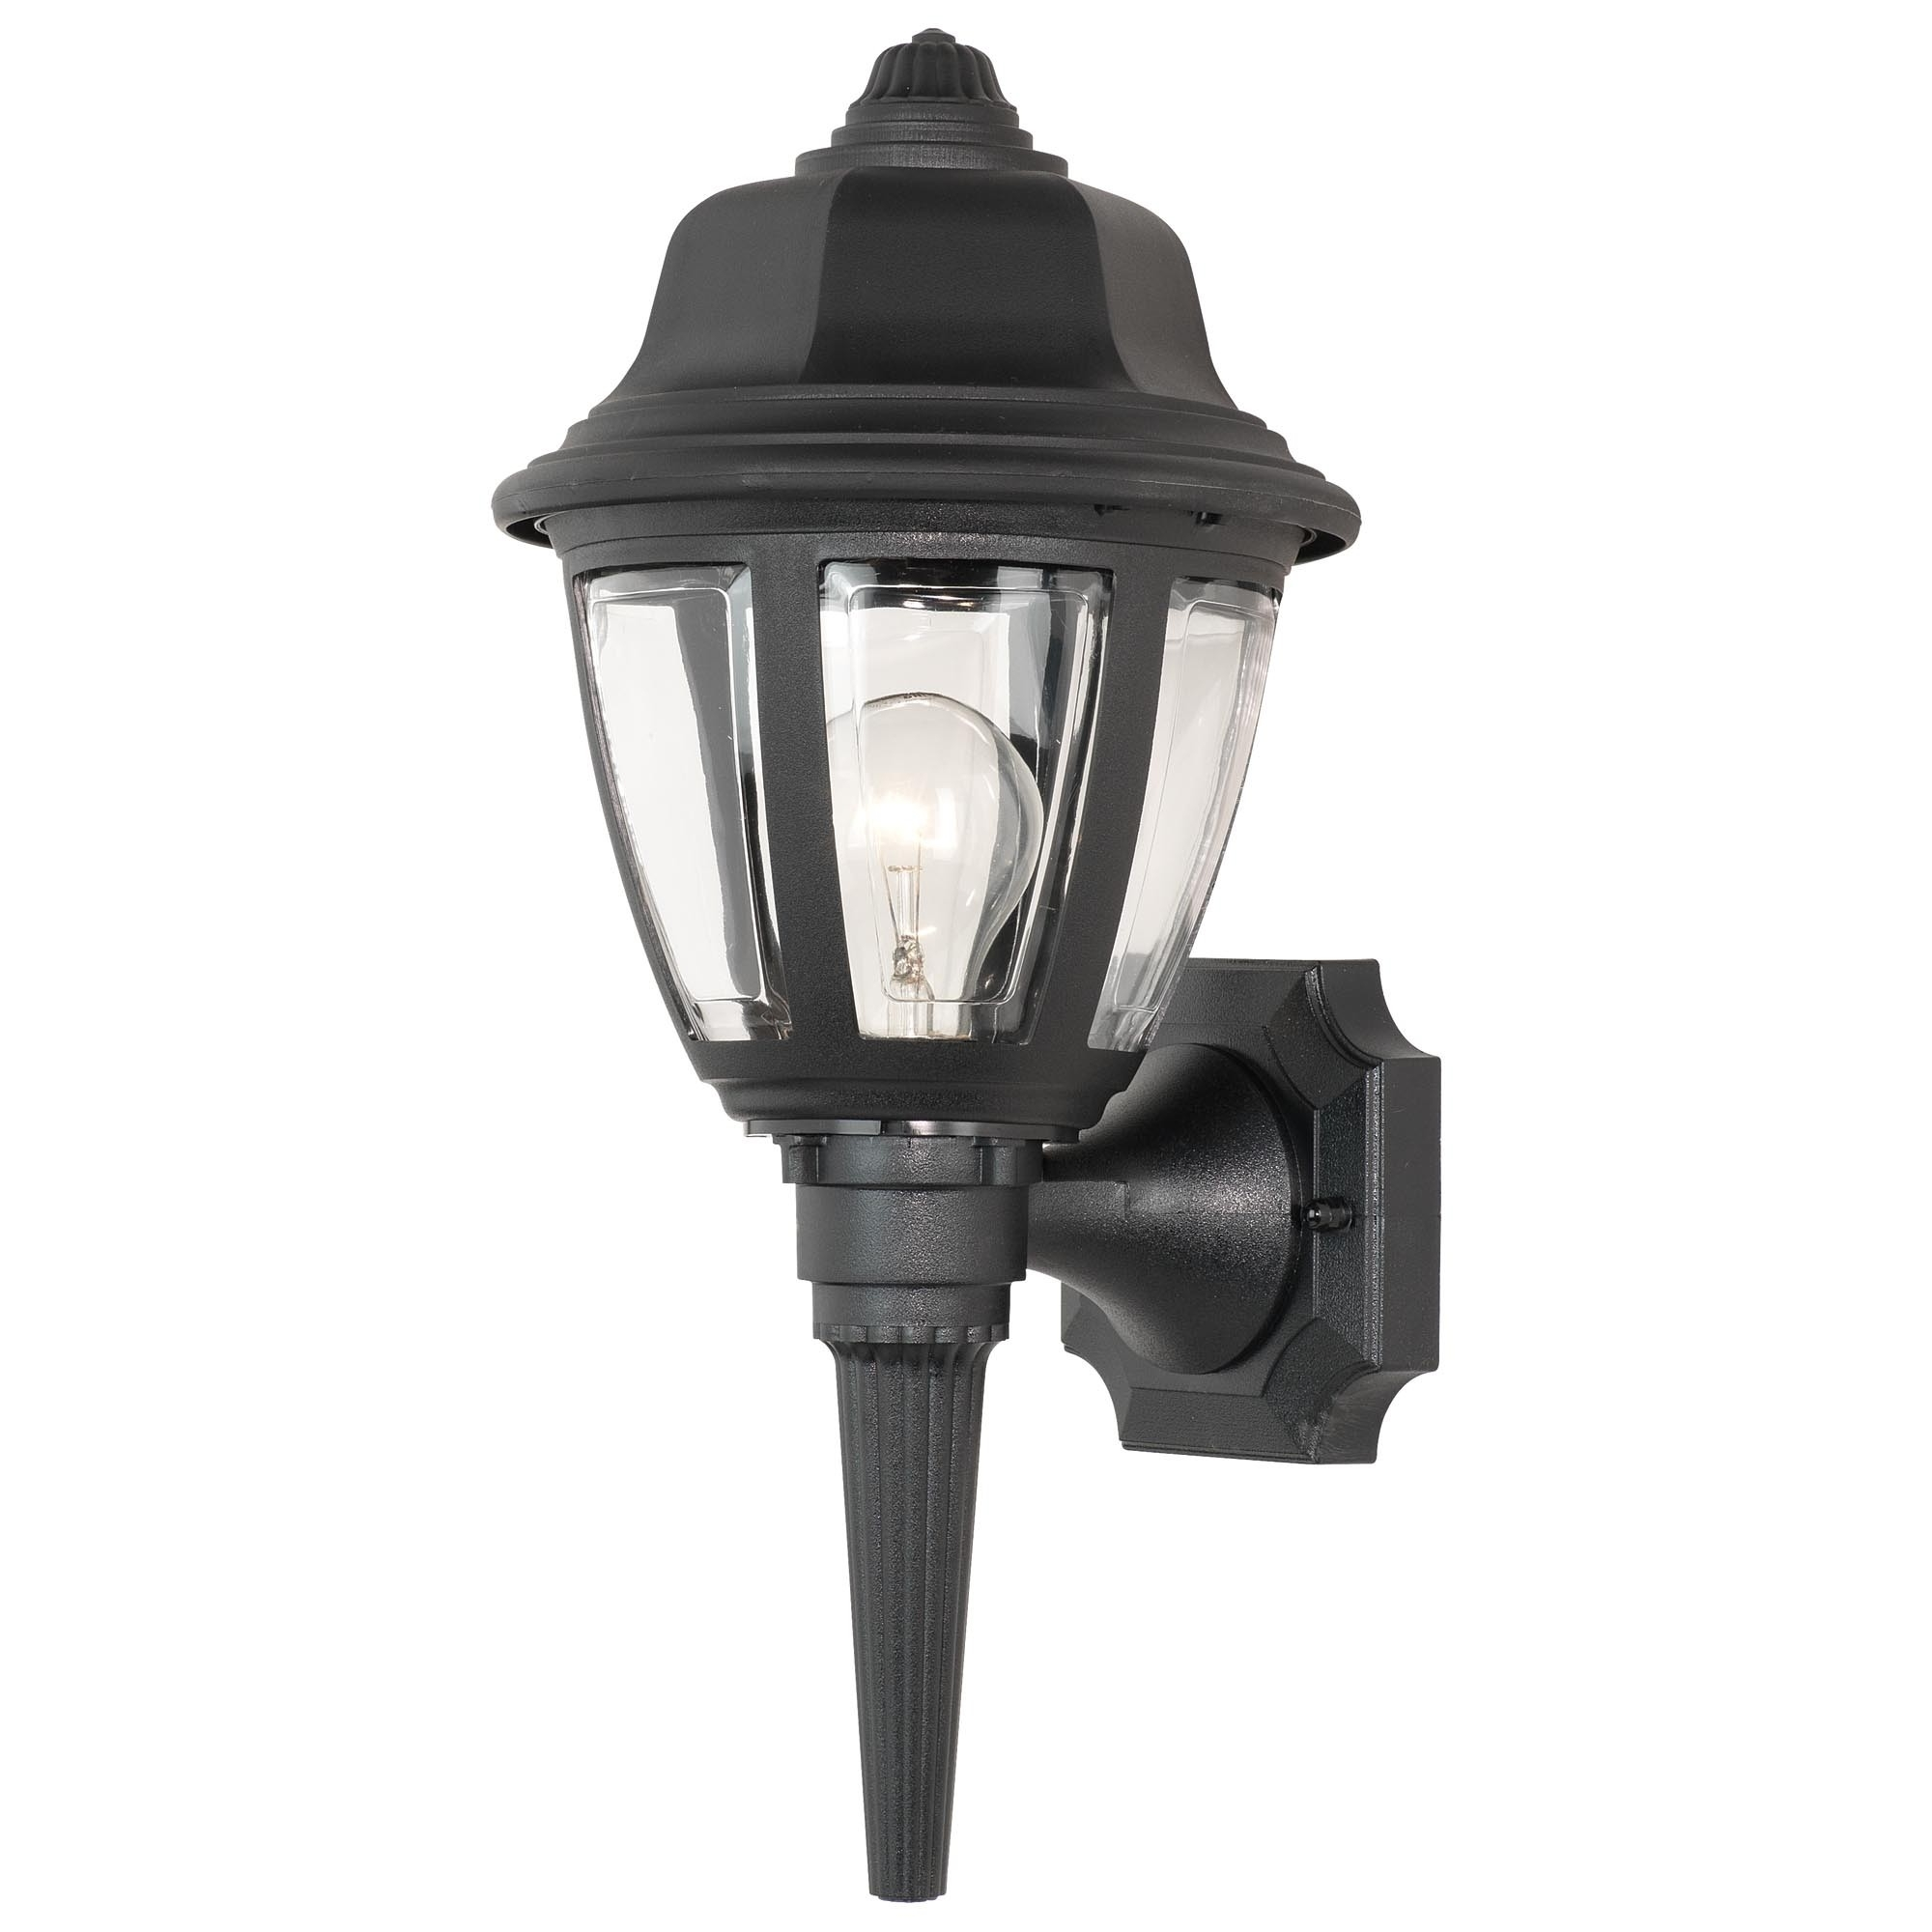 Outdoor Plastic Lanterns Pertaining To Well Known Plastic Lanterns Outdoor Lights Light Splendid Black Wall Lantern (Gallery 2 of 20)